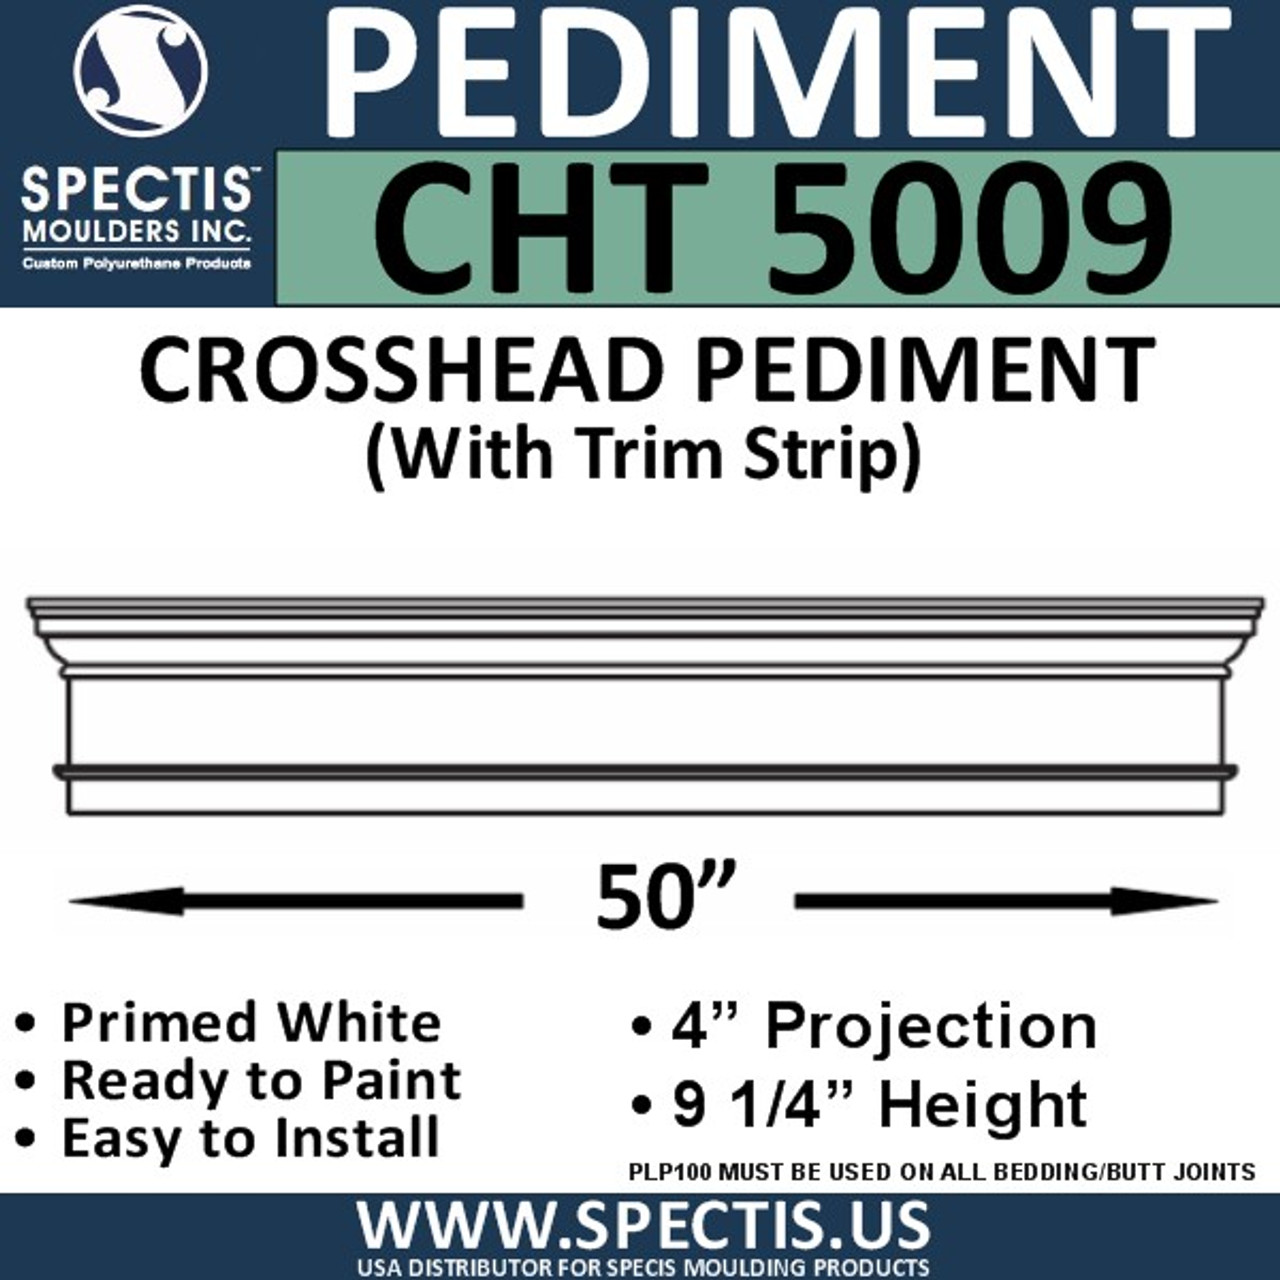 "CHT5009 Crosshead with Trim Strip 50"" W x 9 1/4"" H"